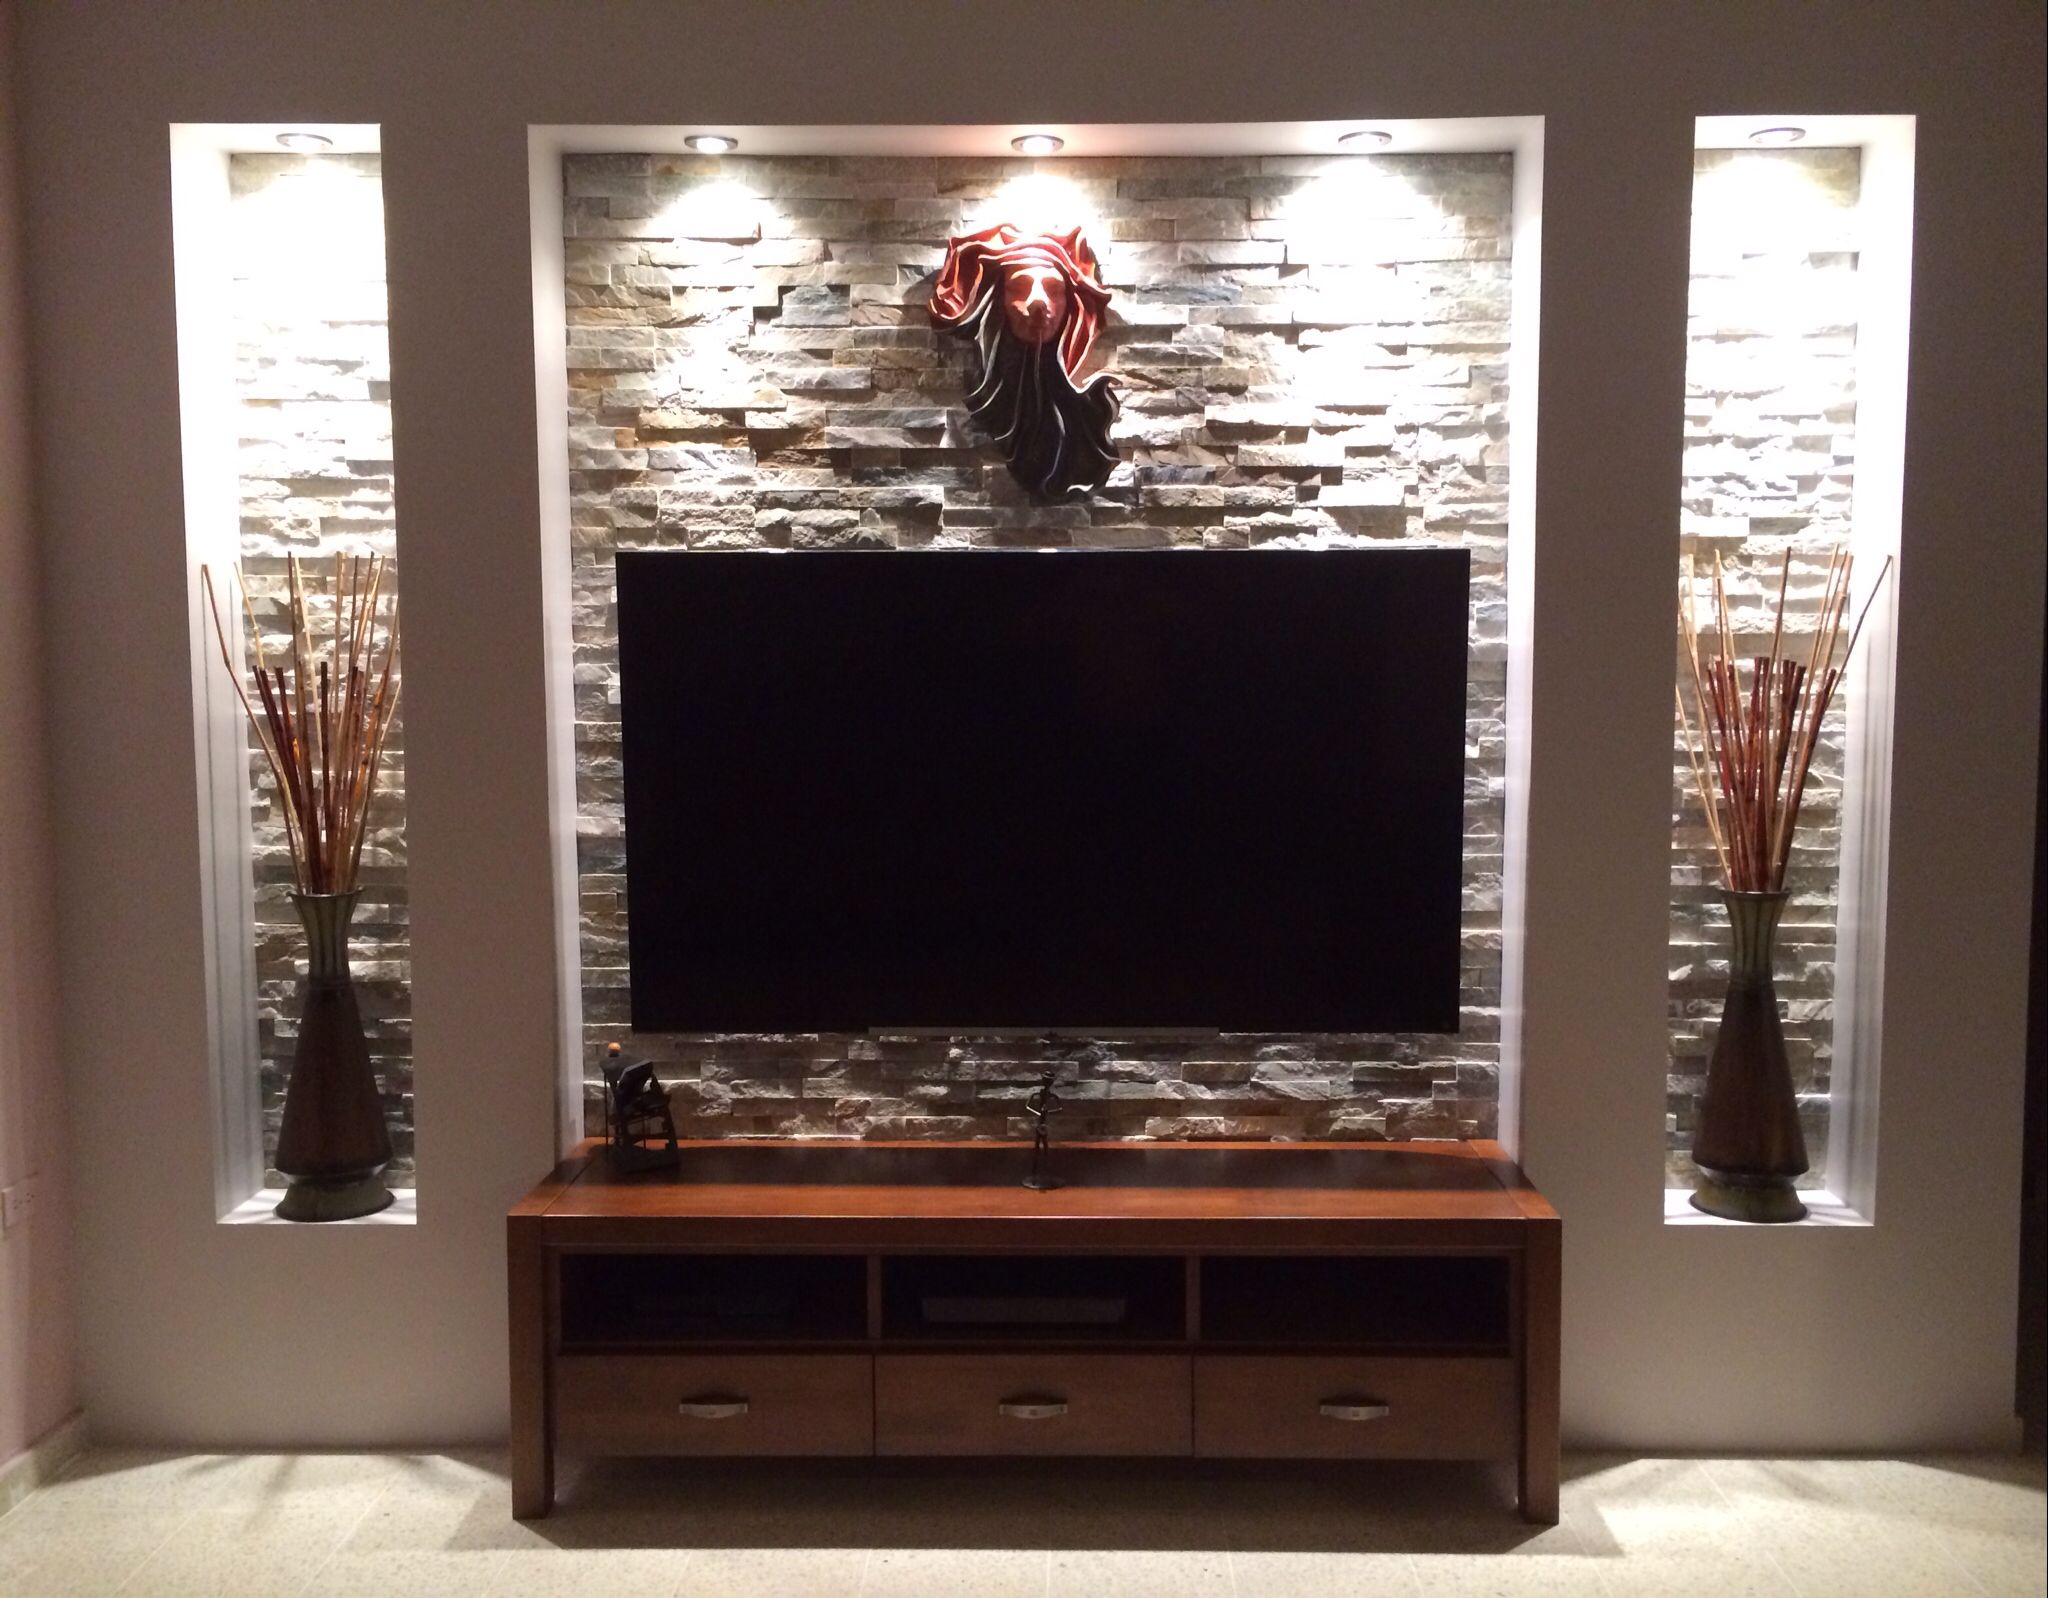 tv wall | tv wall transformation | pinterest | tv walls, tvs and walls